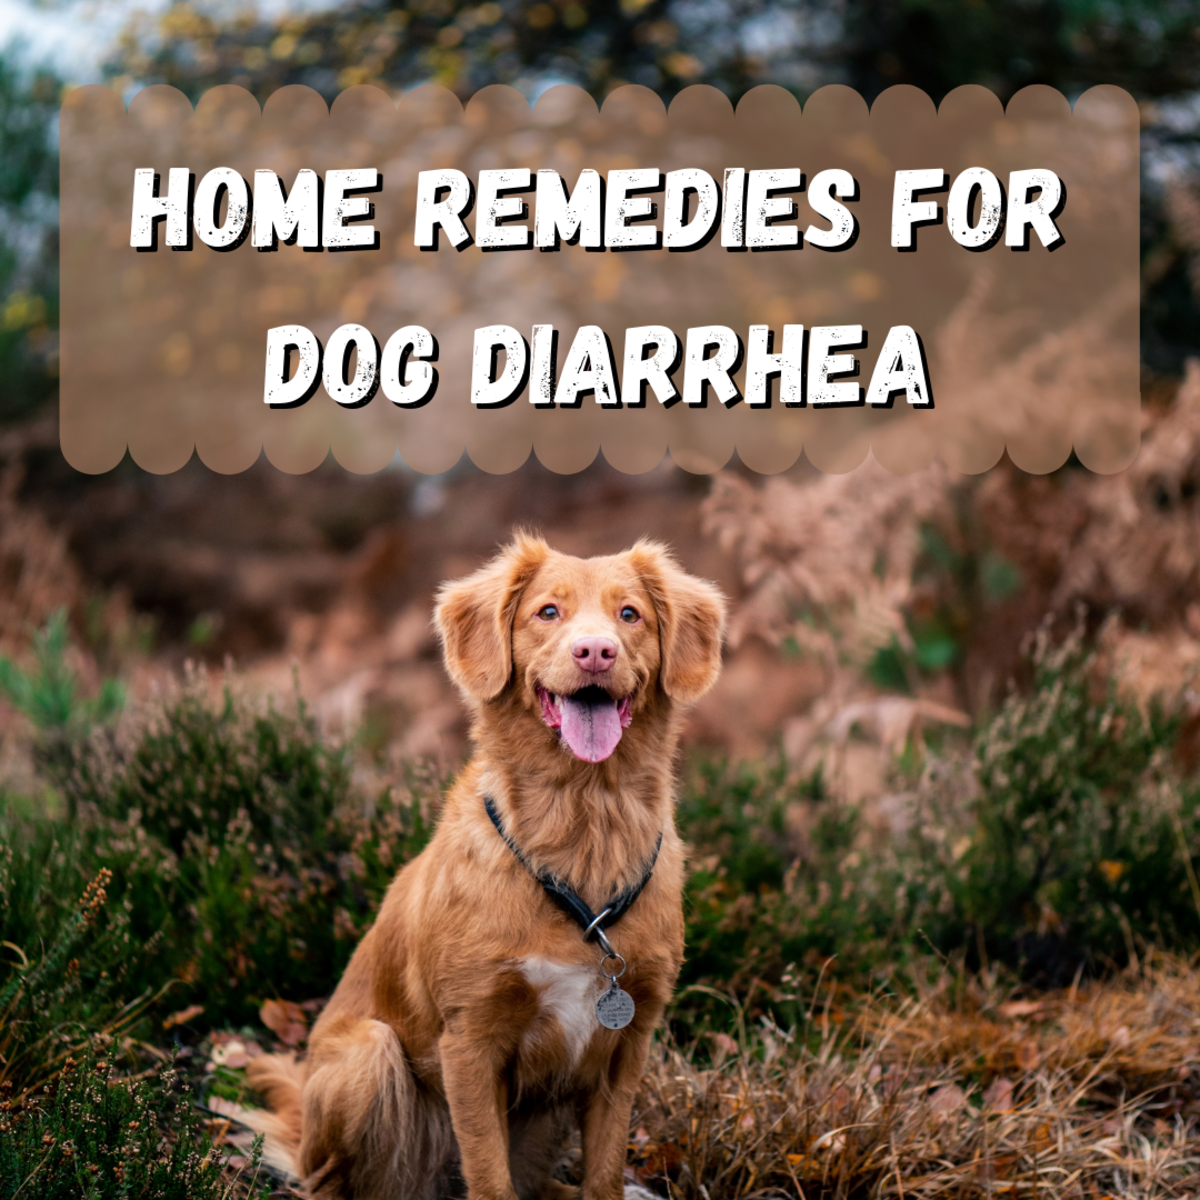 Read on to learn about how to take care of a dog suffering from diarrhea. The BRAT diet might be helpful for your pup!